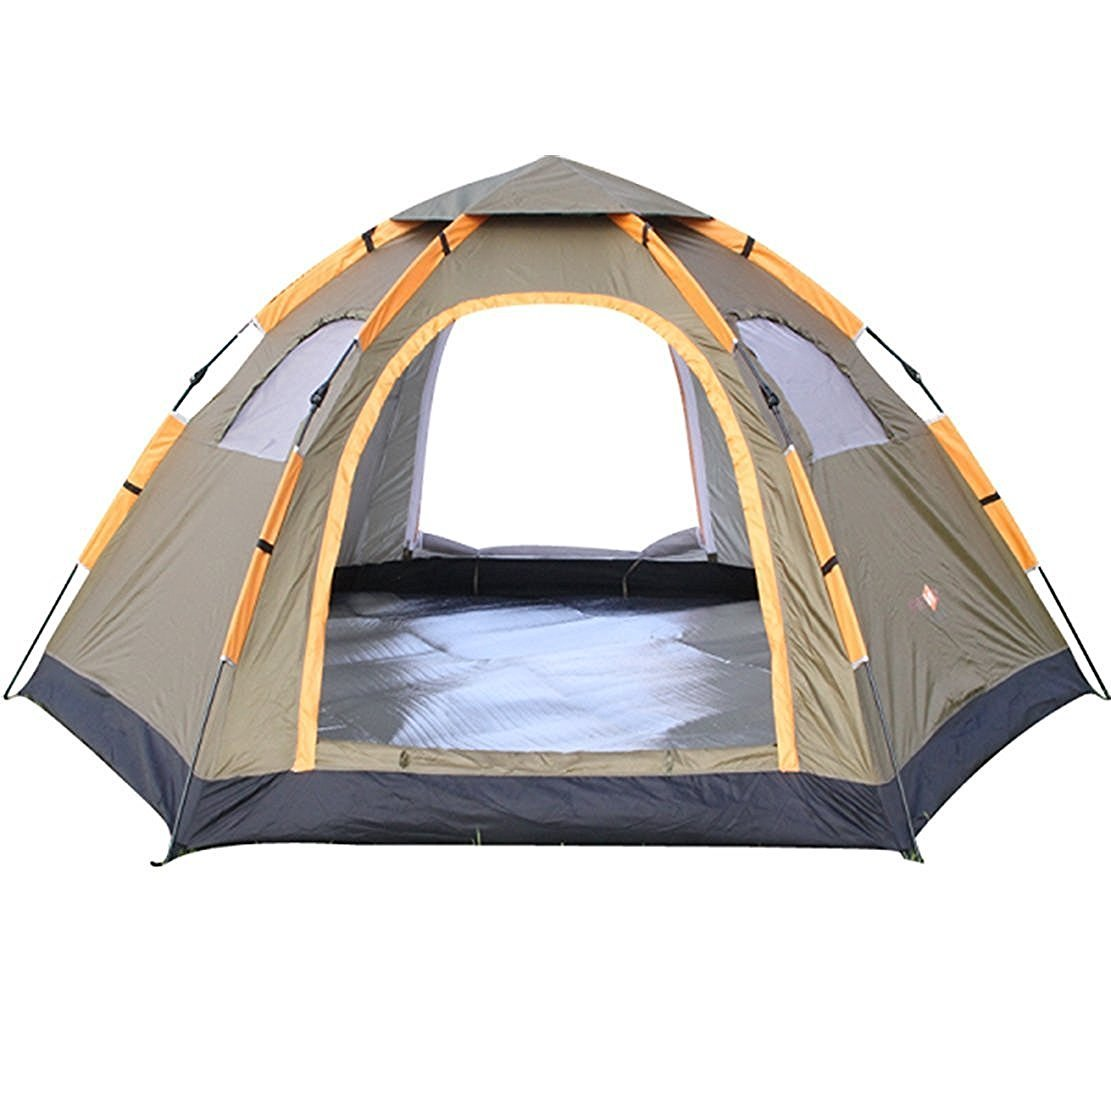 Best Tents 2020.Top 10 Best Large Family Camping Tents 2018 2020 On